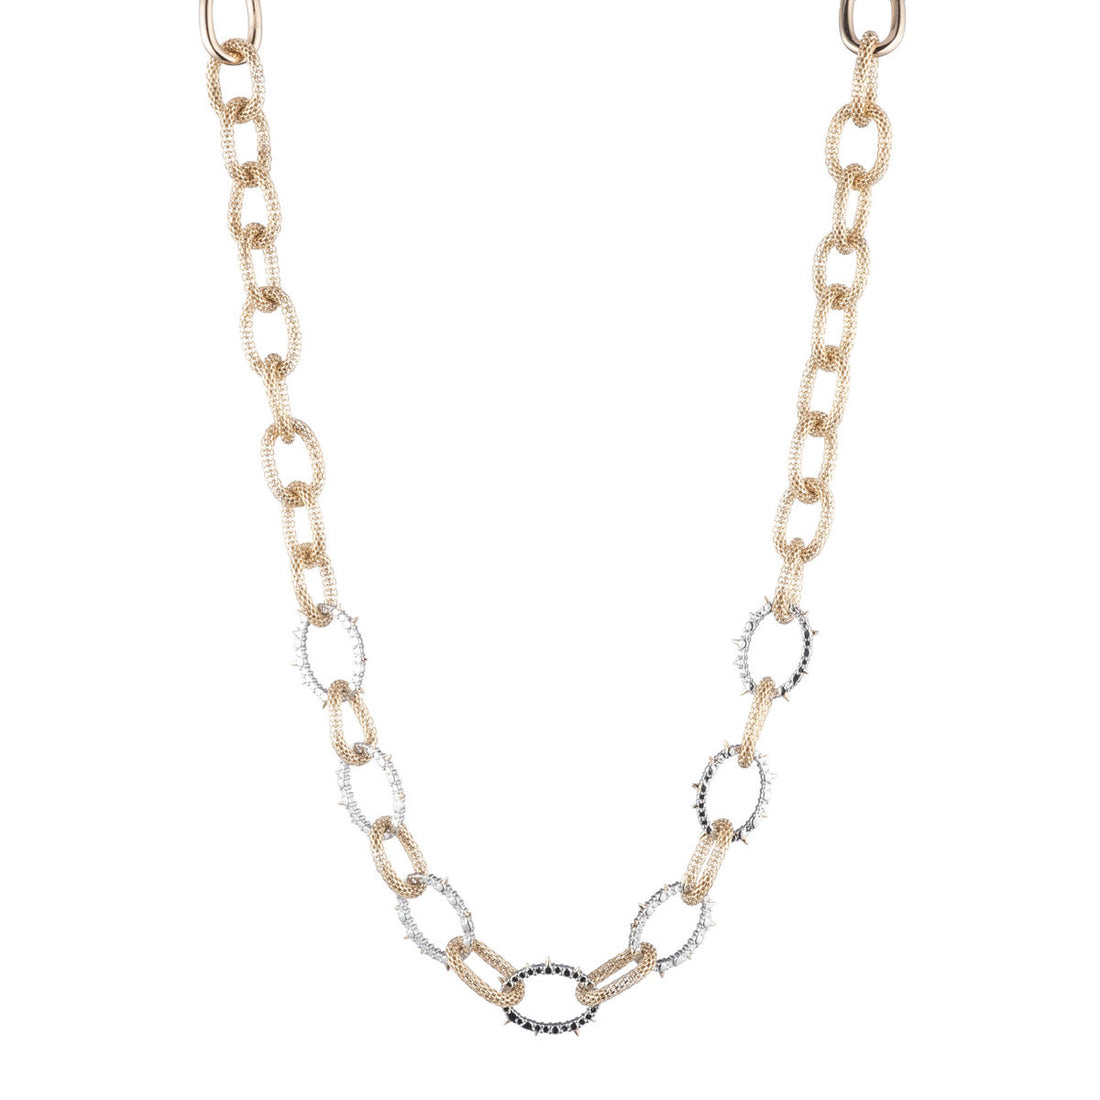 Alexis Bittar Chain Link Soft Necklace